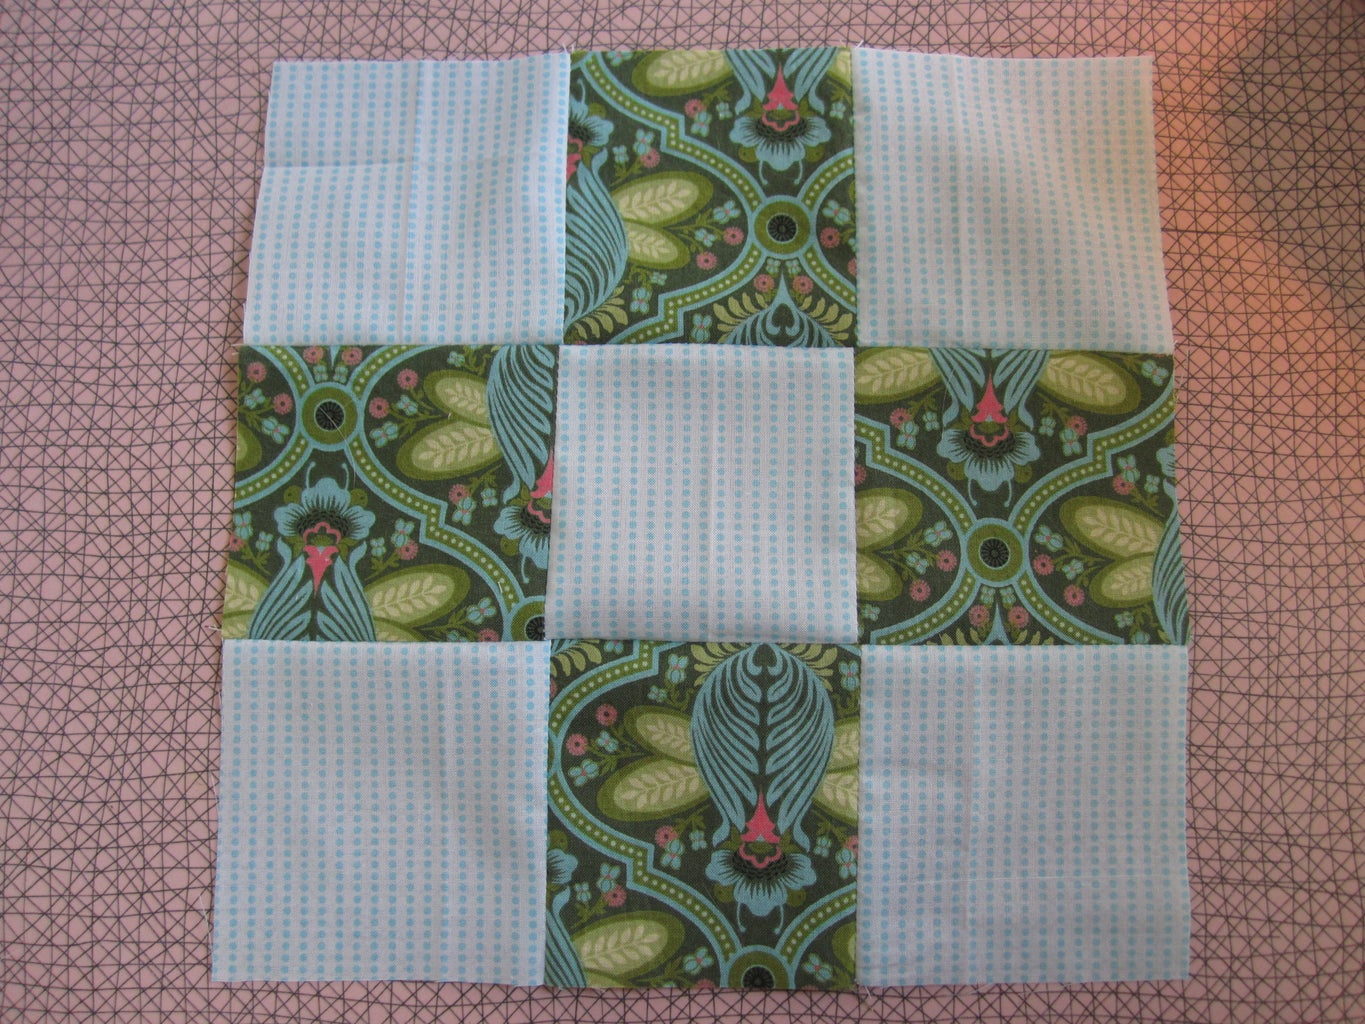 Anatomy of a 9 Square Quilt.